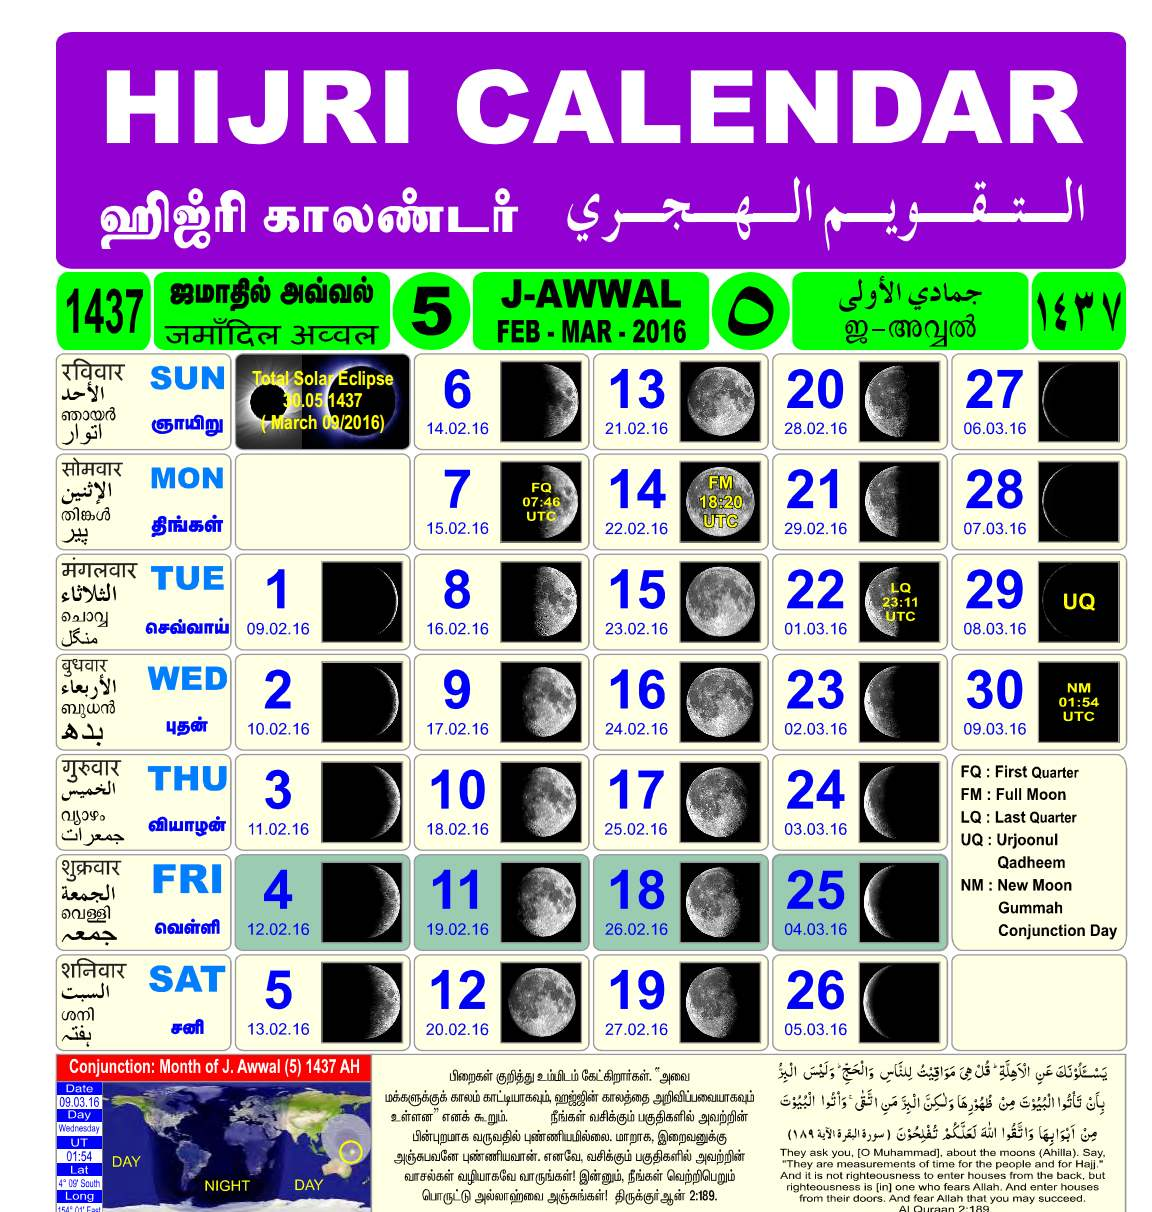 callender muslim singles United kingdom 1992 – calendar with british holidays yearly calendar showing months for the year 1992 calendars – online and print friendly – for any year and month.